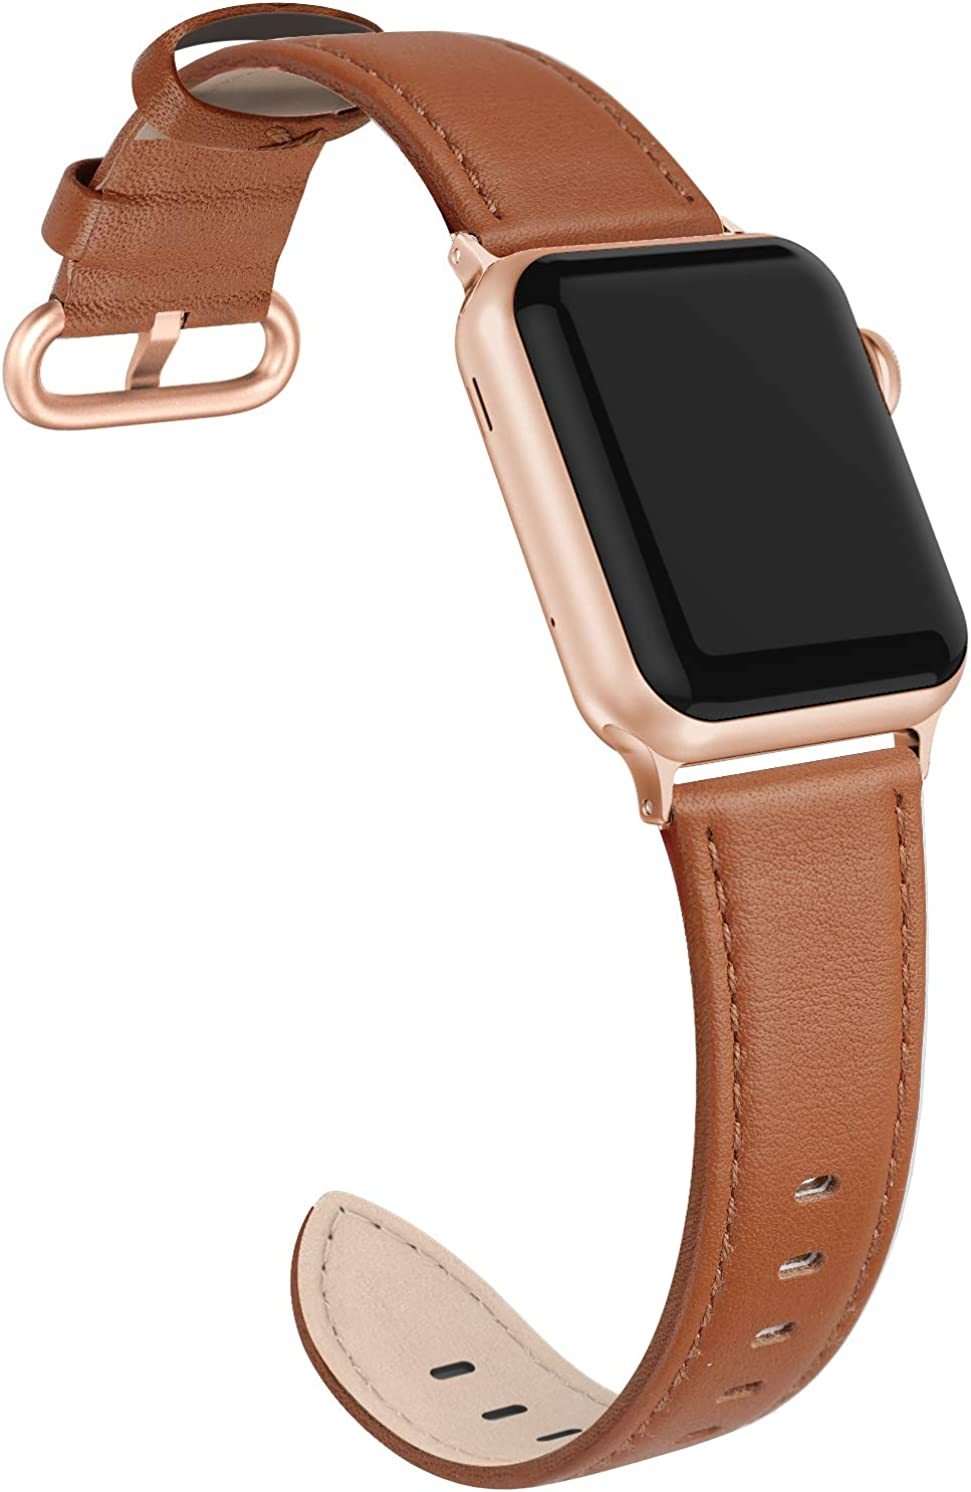 EDIMENS Leather Bands Compatible with Apple Watch 38mm 40mm Band Women, Genuine Leather Band Replacement Strap Compatible for iWatch Apple Watch Series 6 5 4 3 2 1 SE Sport Edition Women